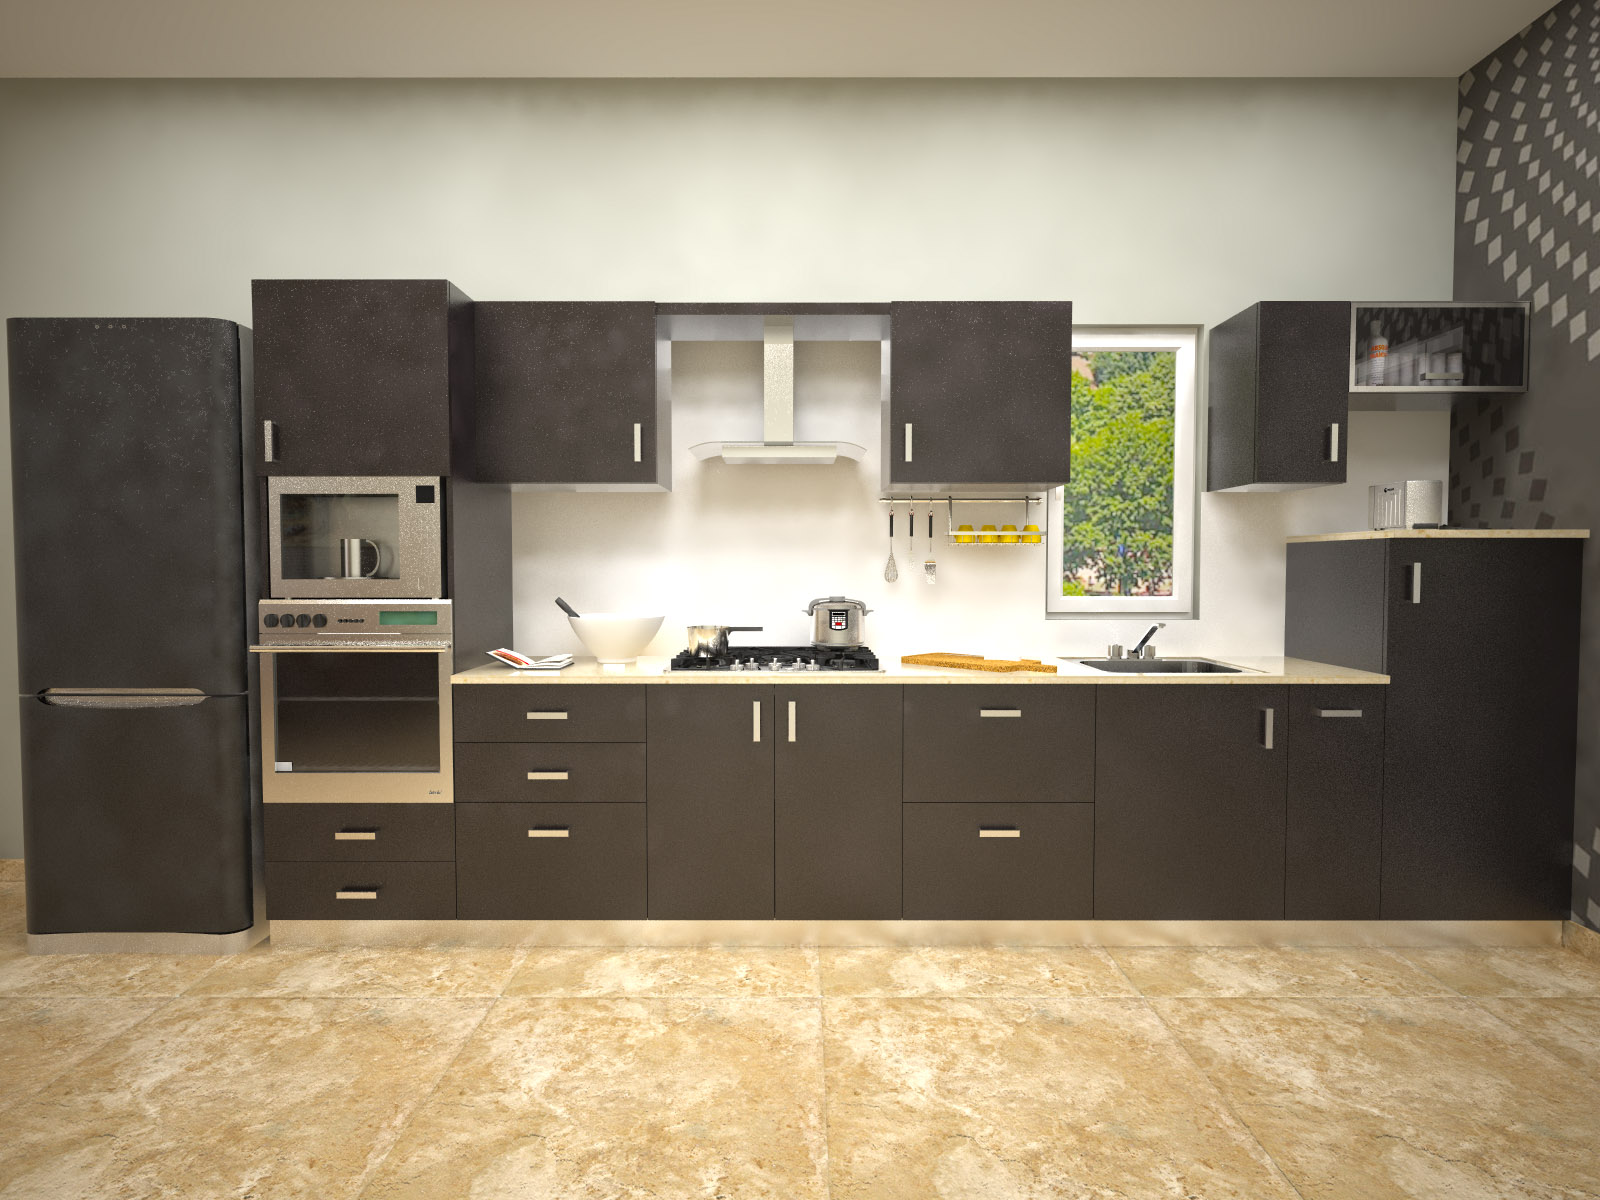 AAMODA kitchen: Glossy Laminated Indian Parallel Kitchen